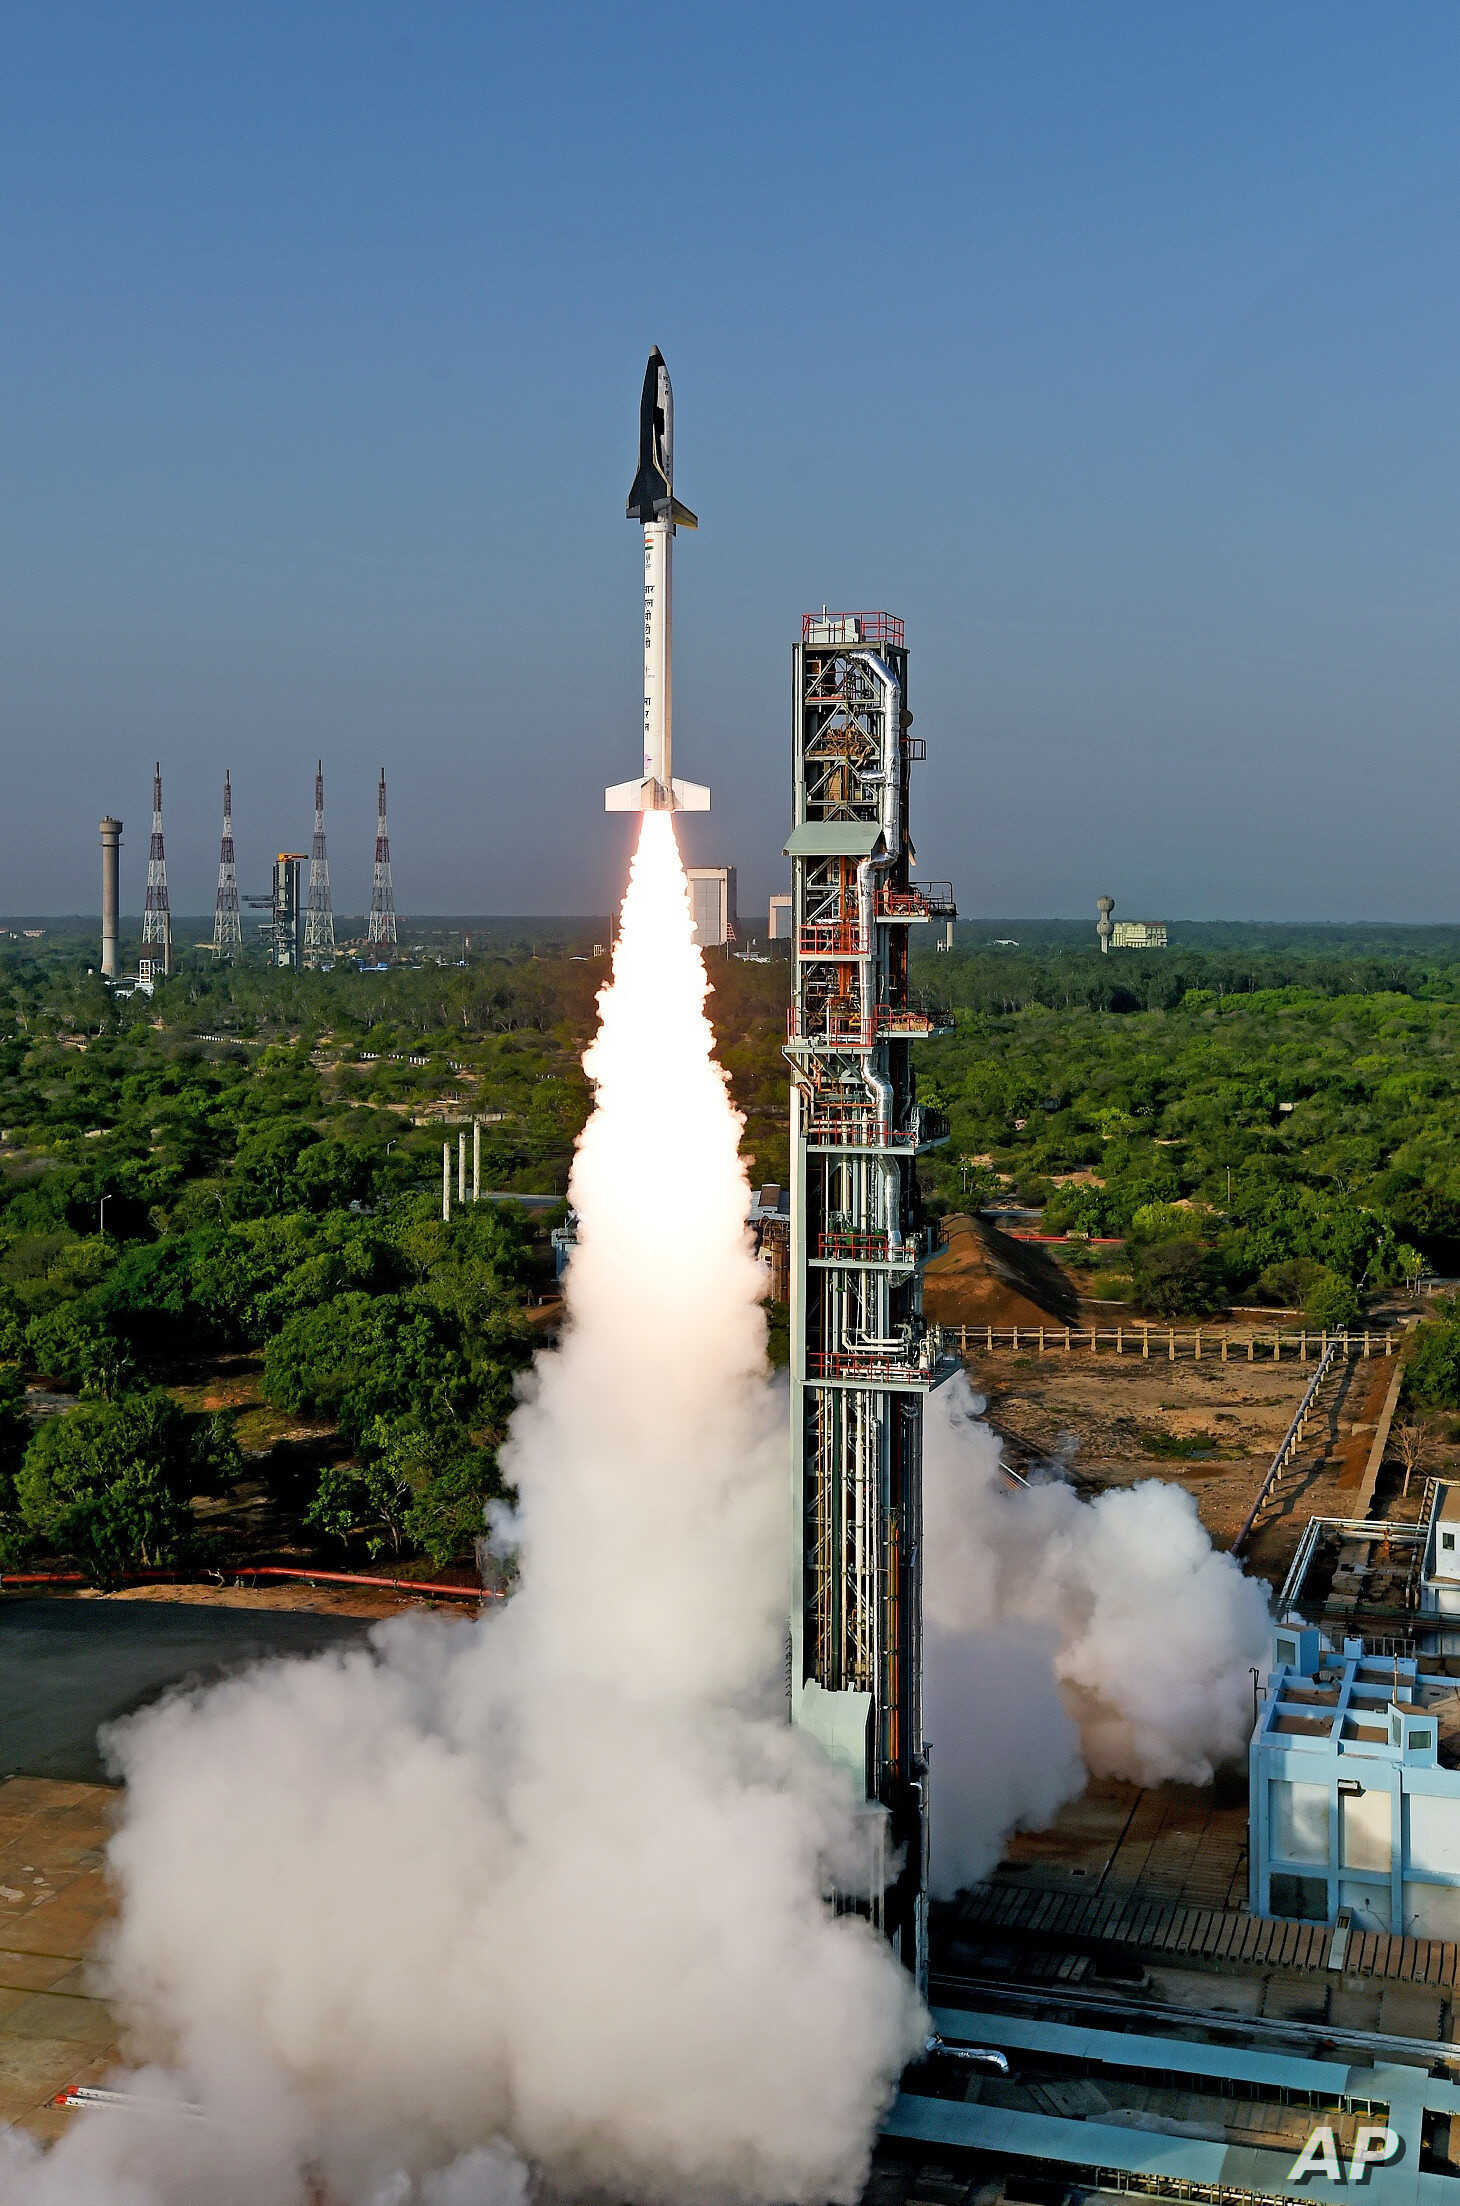 India's first indigenously made and reusable space launch vehicle is seen lifted off from the launch pad at Satish Dhawan Space Center in Sriharikota, in the southern Indian state of Andhra Pradesh, May 23, 2016.